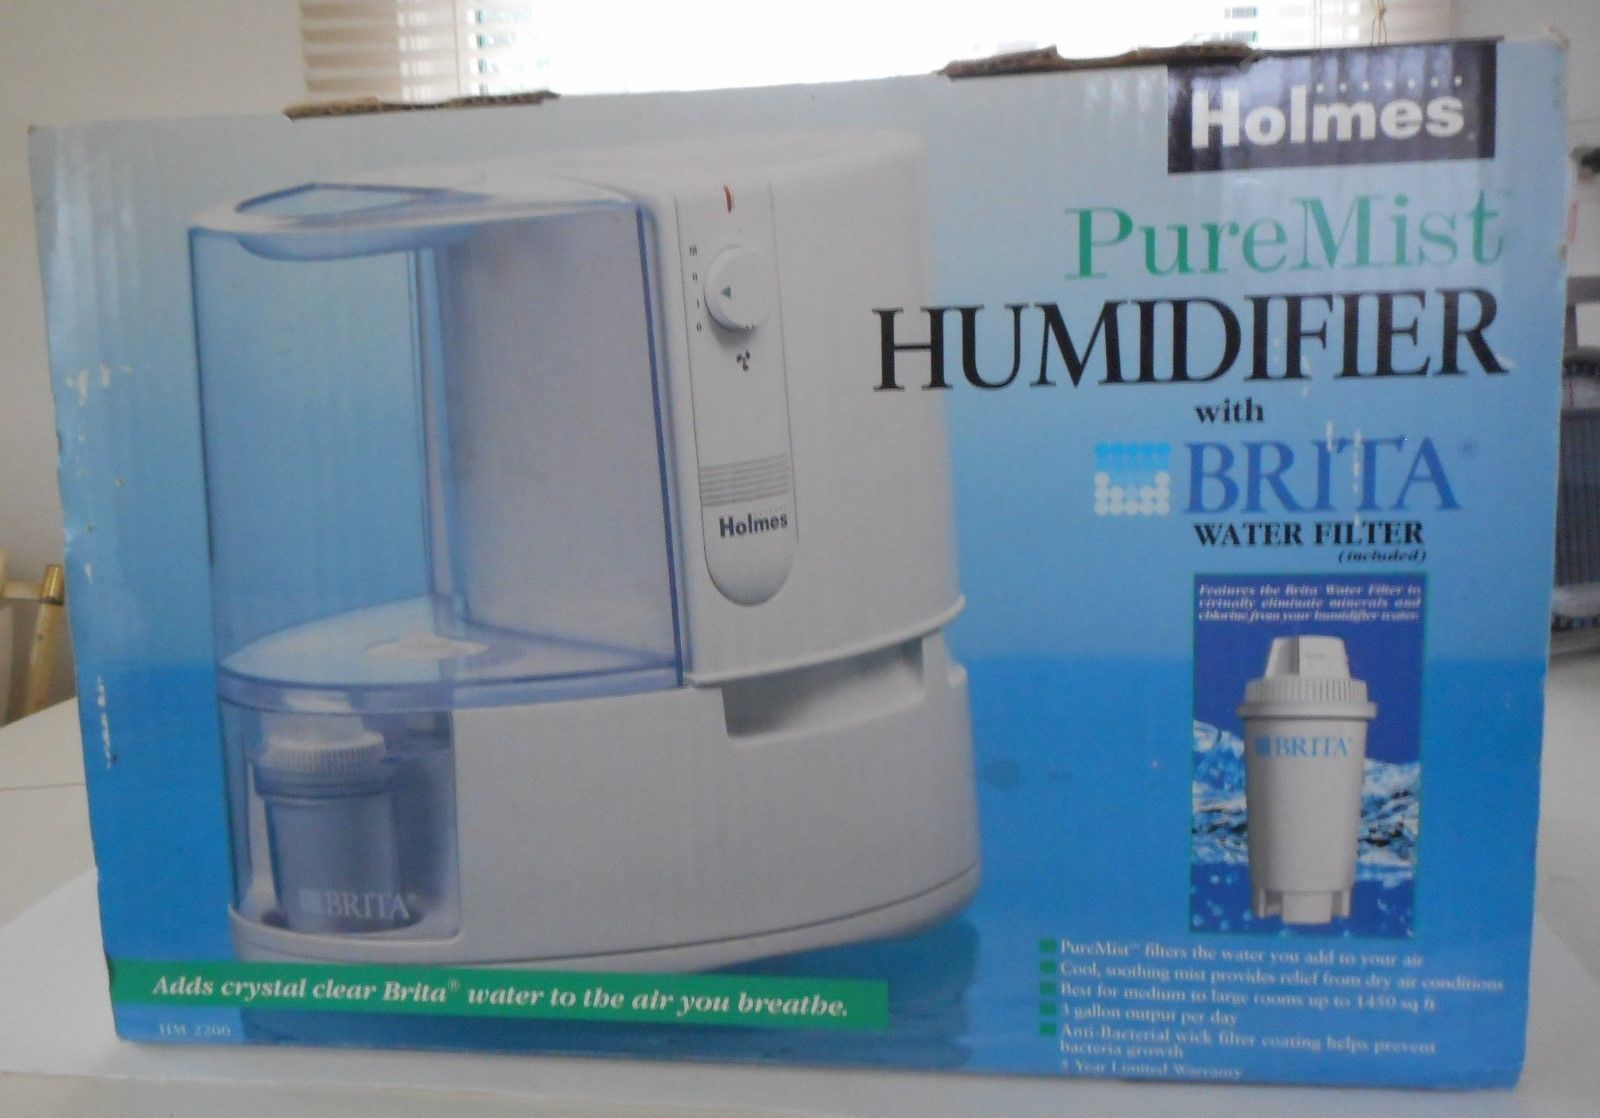 Pure Mist Humidifier with Brita Water Filter HM 2200 Humidifiers #2F6A9C